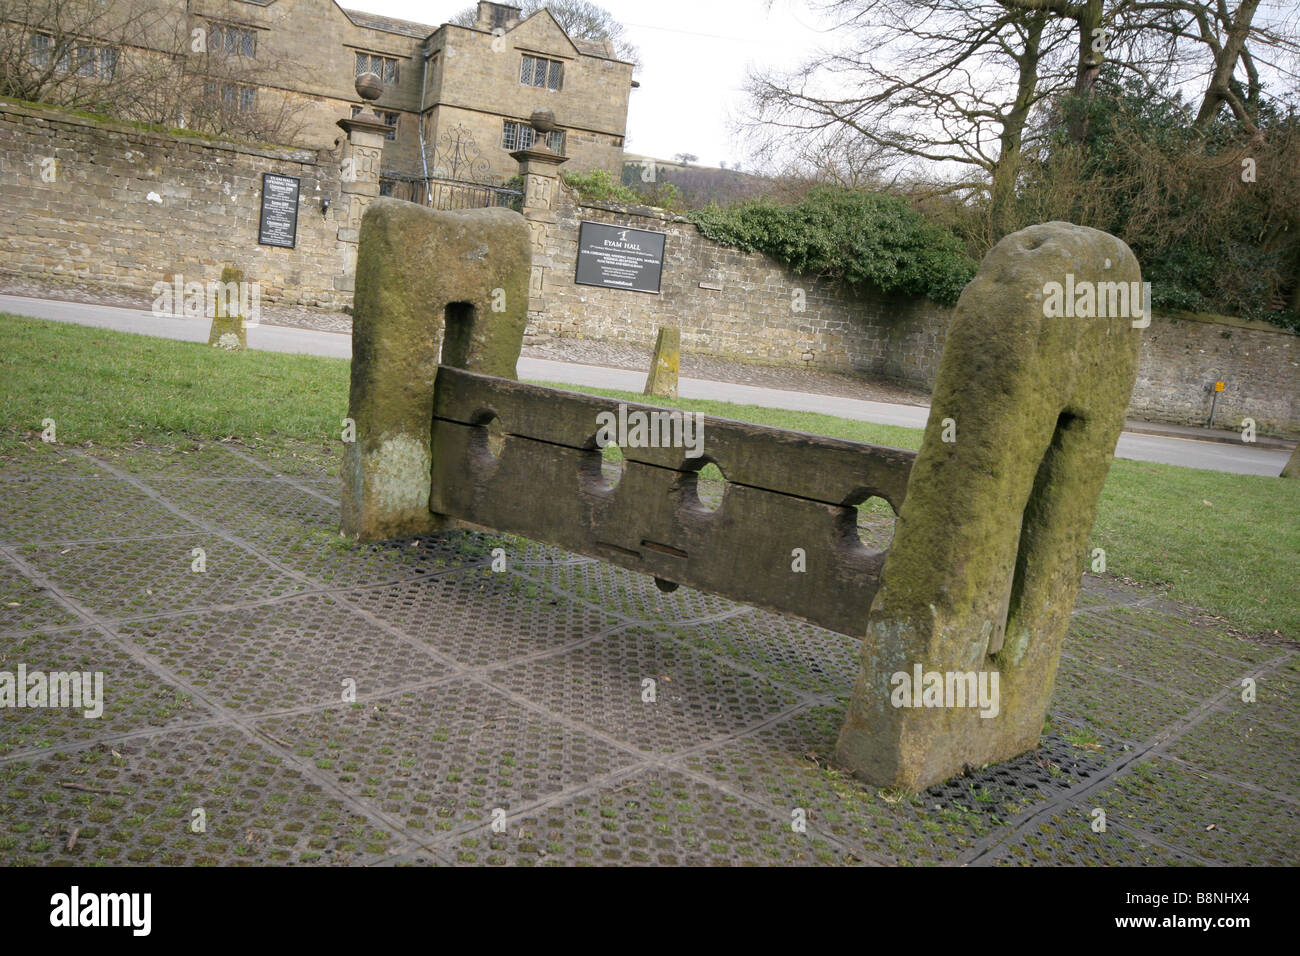 Village stocks in Eyam the Black Death plague village in Derbyshire - Stock Image